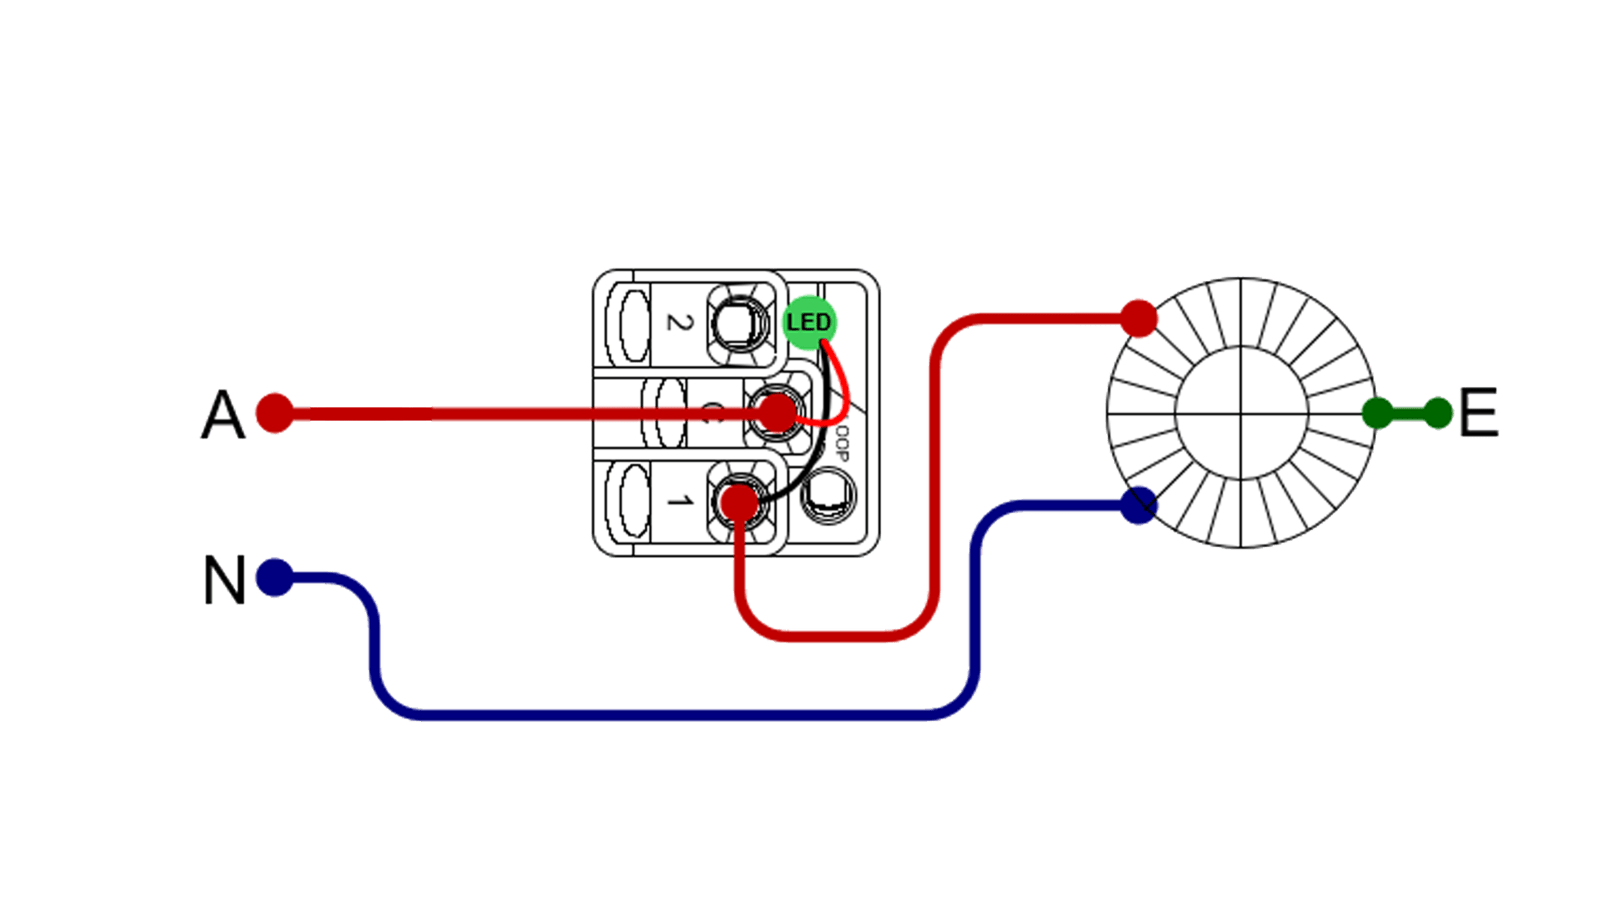 Light Switch Wiring Diagram New Zealand House Fuse Box